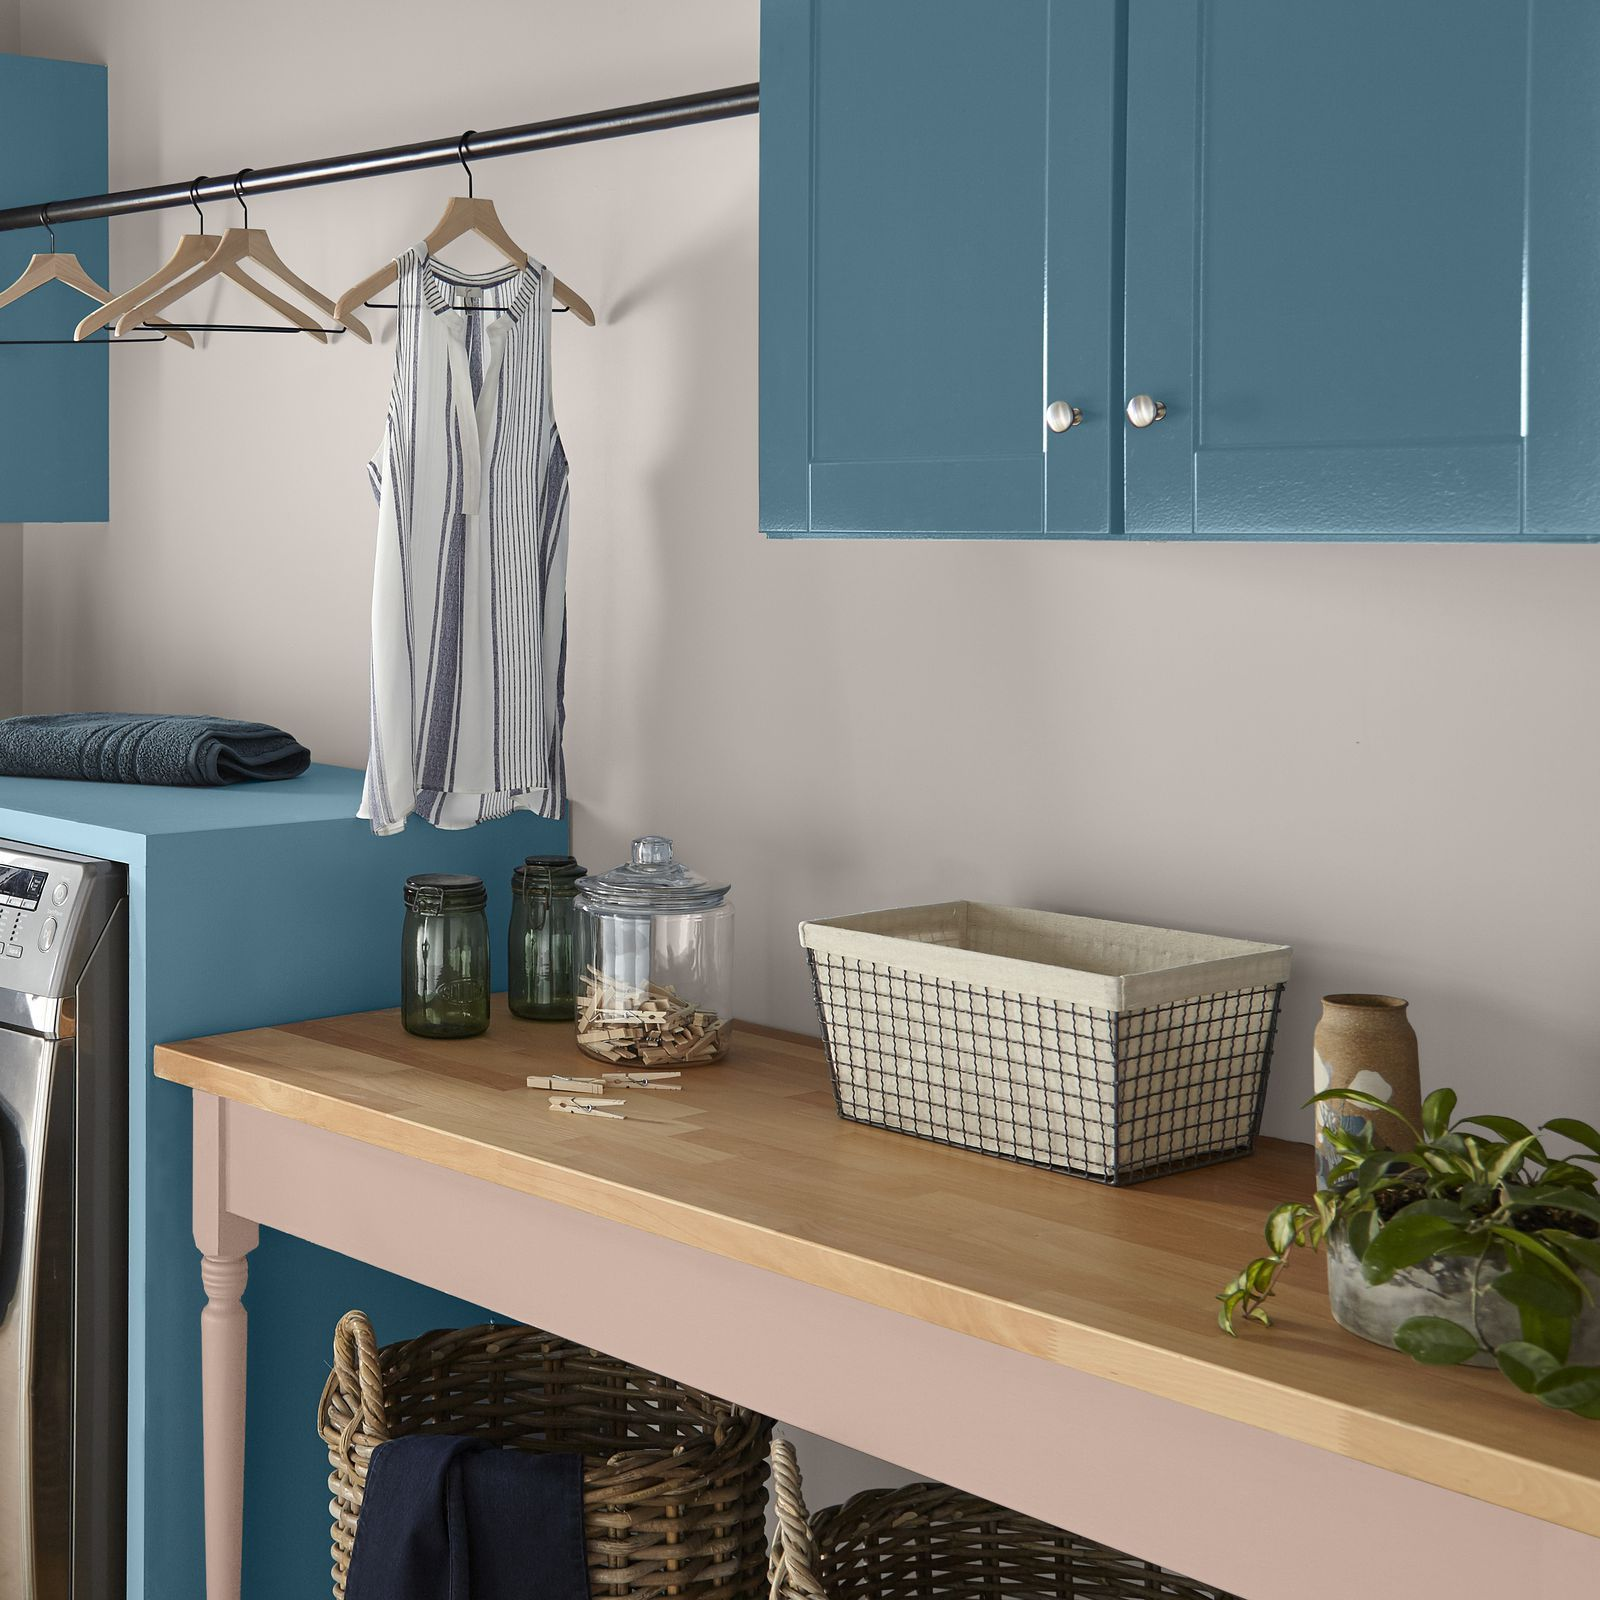 Behr Paint S 2019 Color Of The Year Is Exactly What Your Home Needs Trending Decor Decor Behr Colors